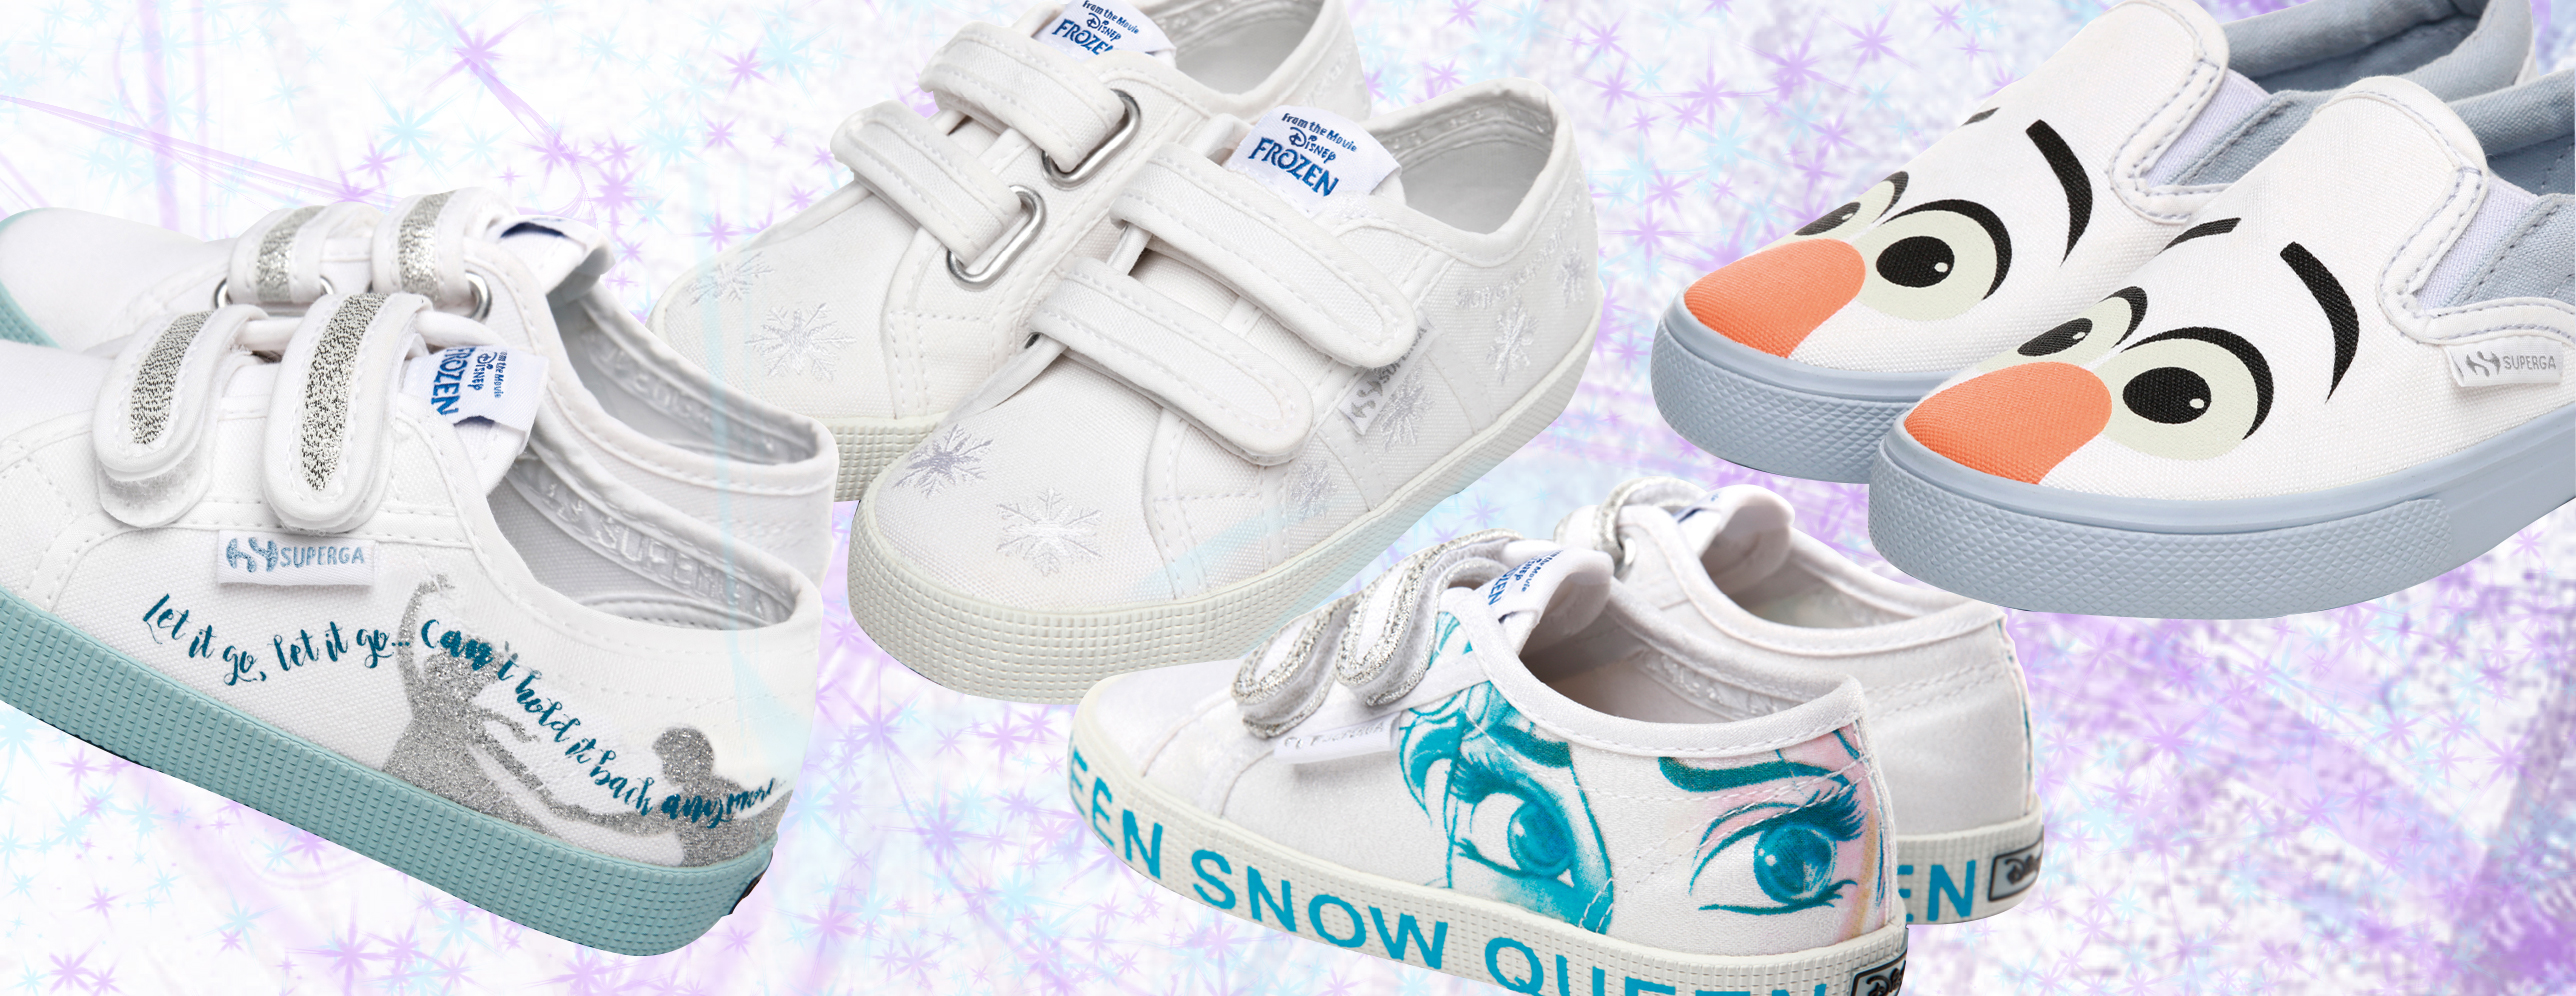 differently good out x outlet store Your First Look At The Superga X Frozen New Disney Collection!